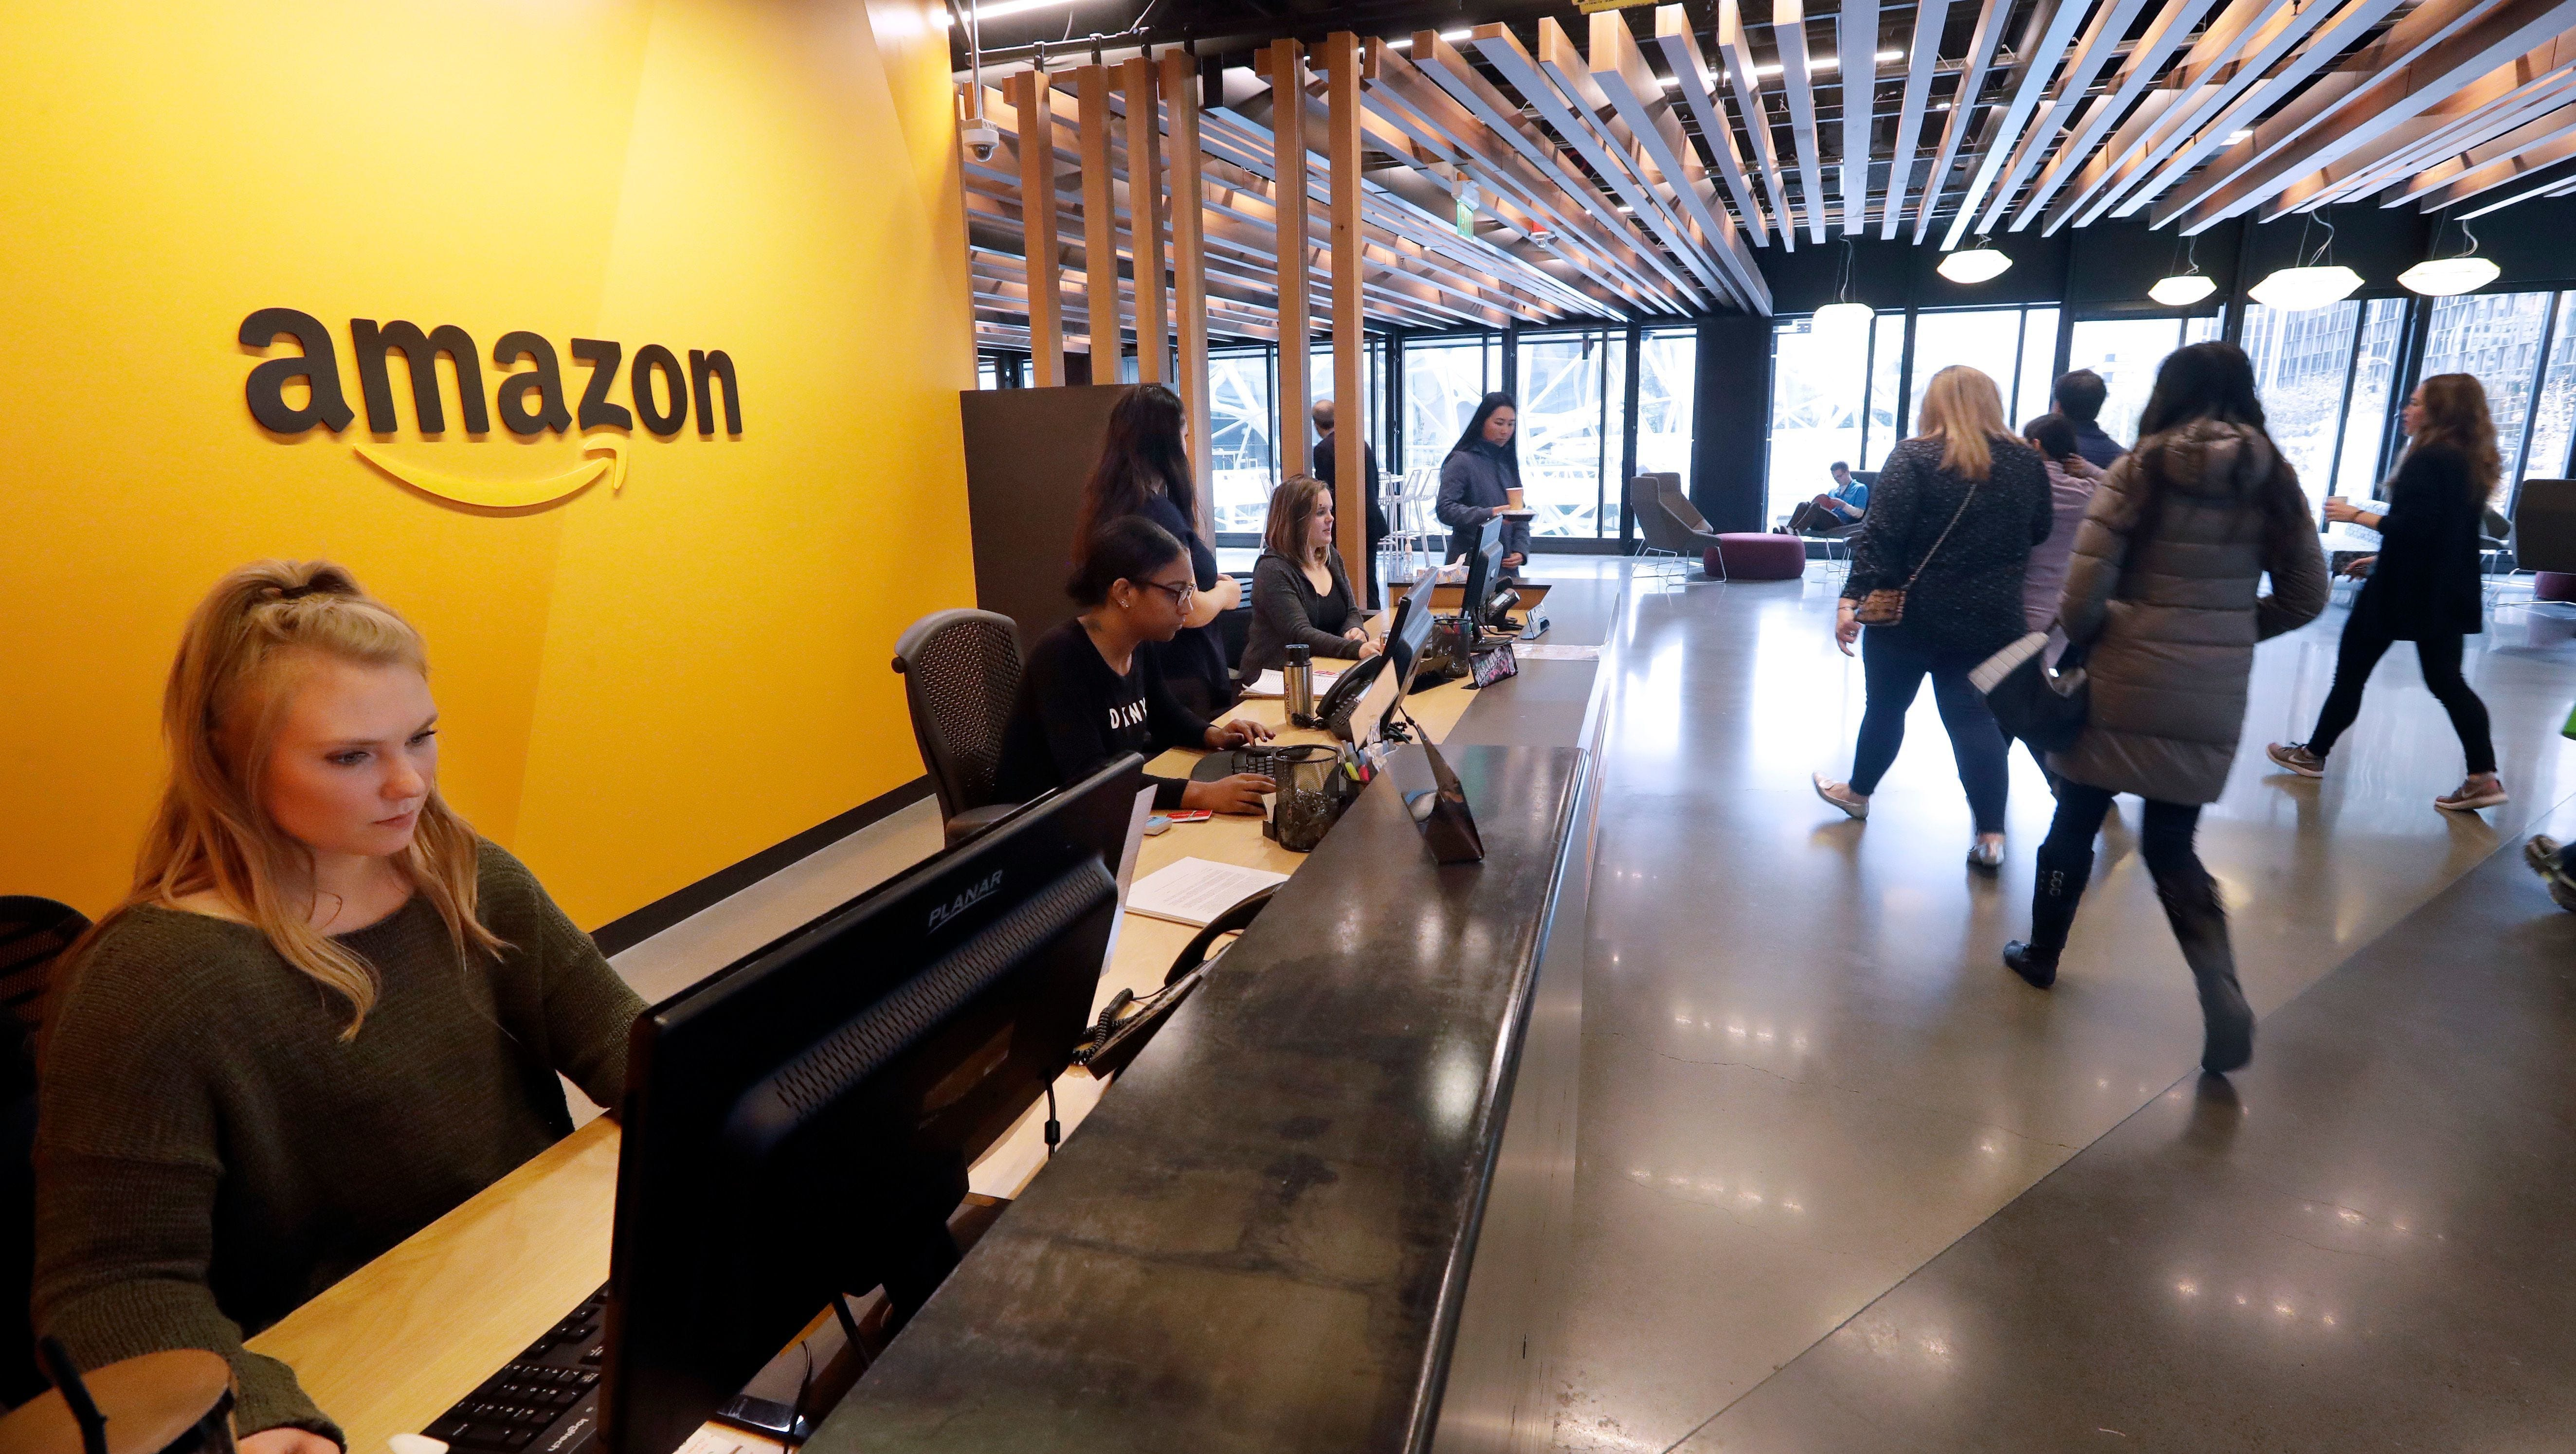 Amazon's 'Momazonians' demand back-up day care, say it's costing them promotions